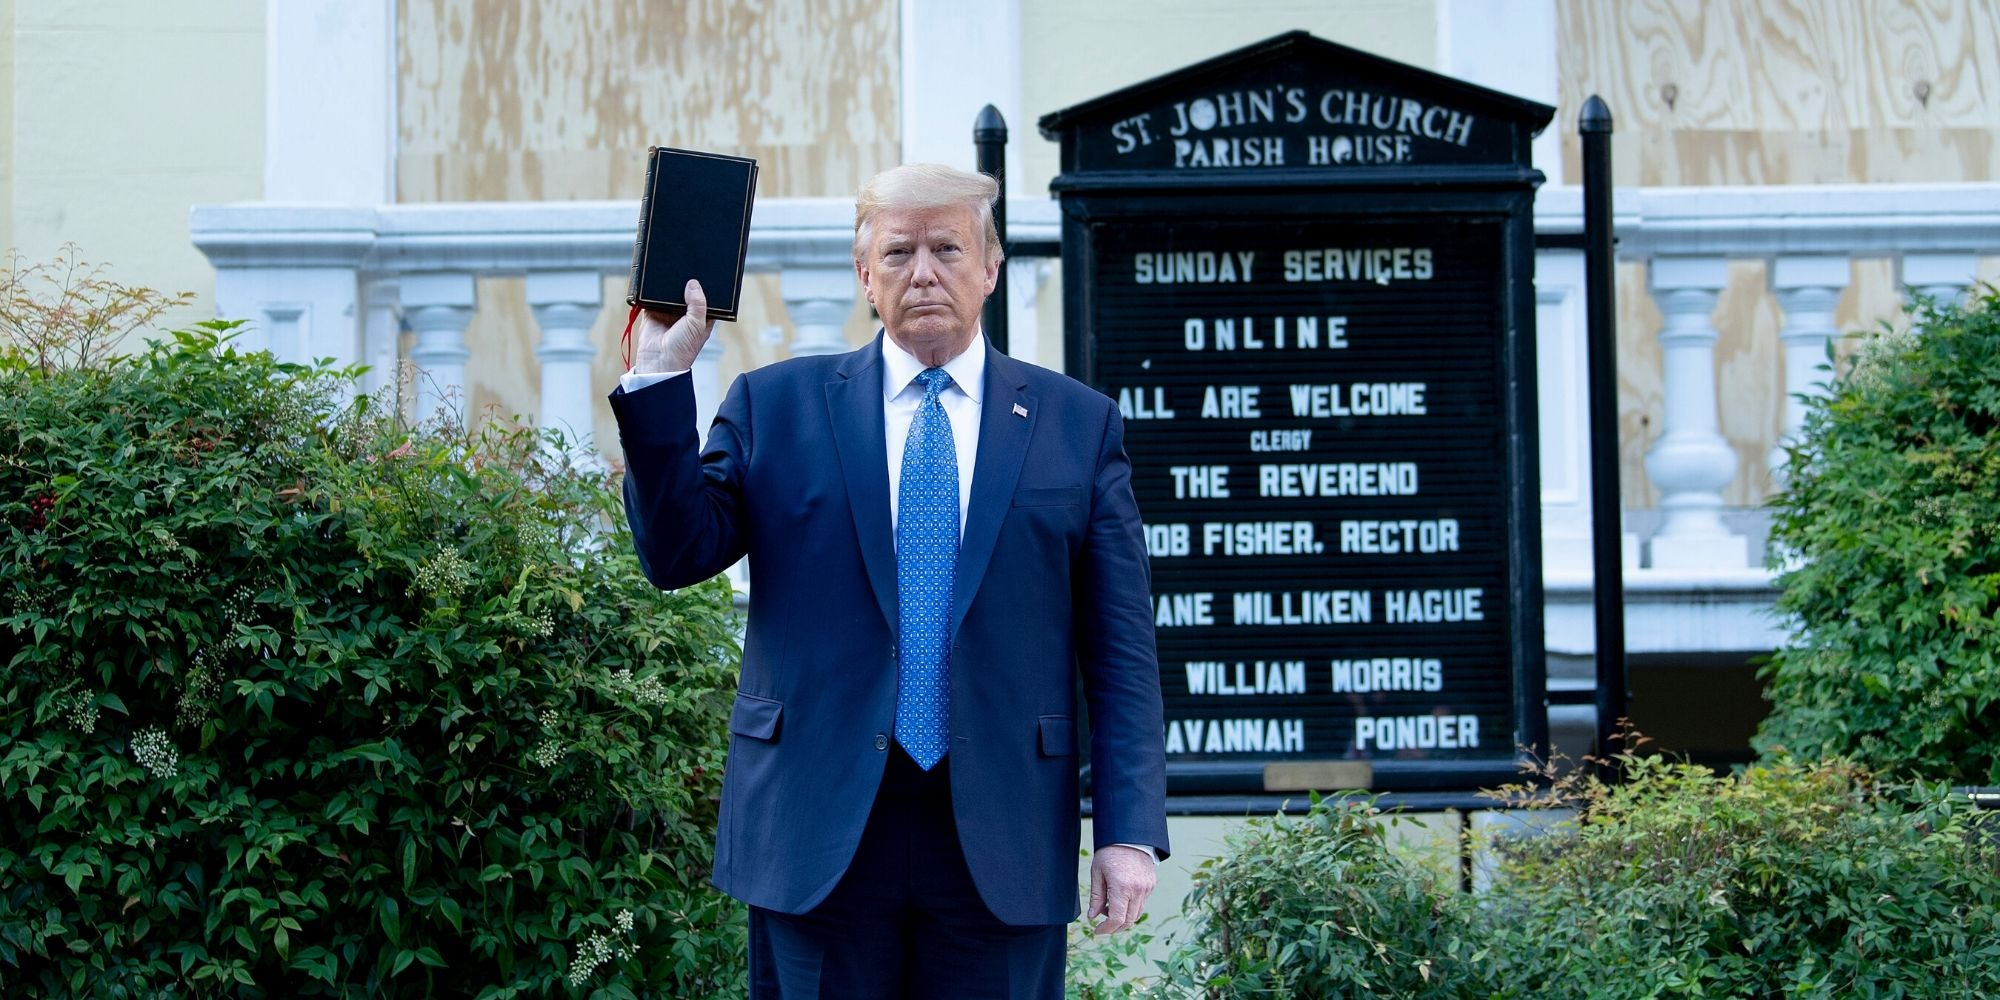 'Here in New York, we read the Bible': Cuomo condemns Trump for his church photo op